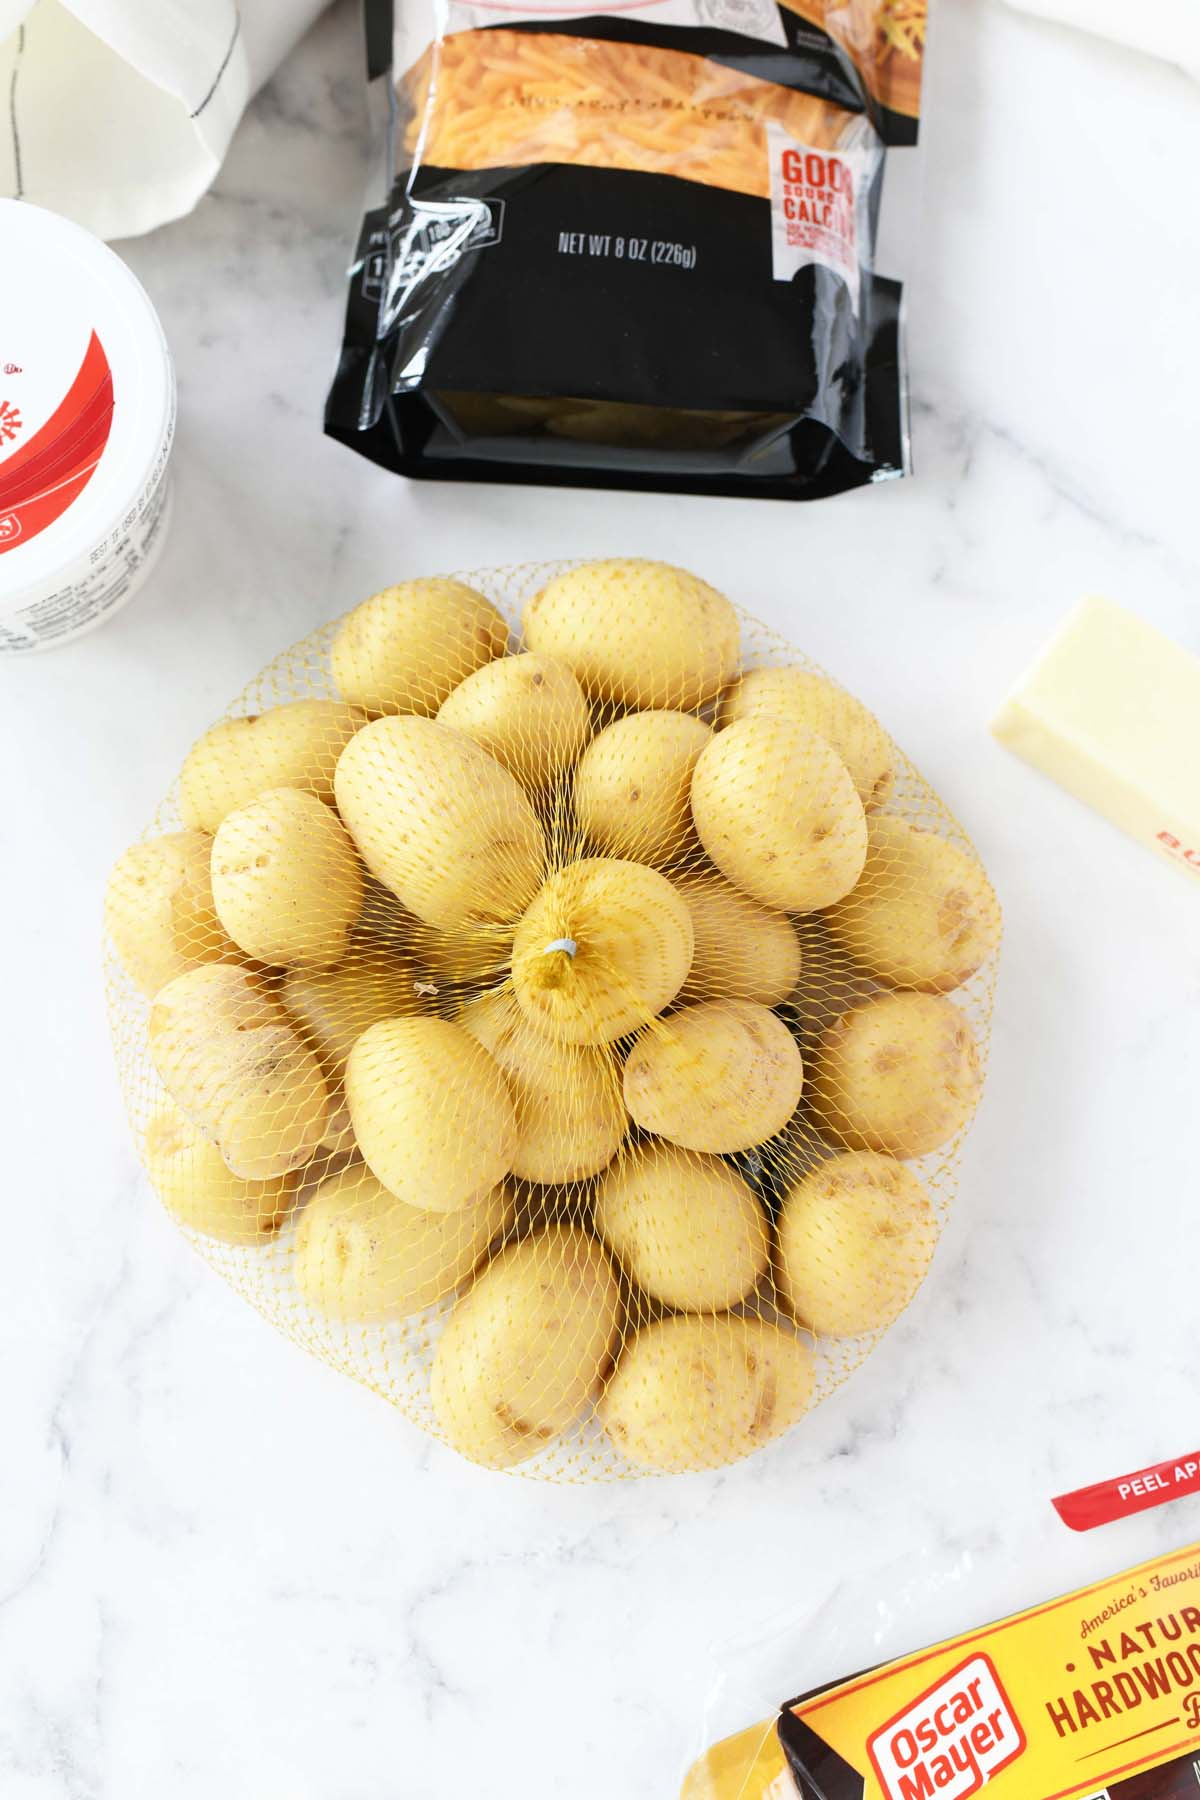 Baby potatoes in a netted bag on a white table.